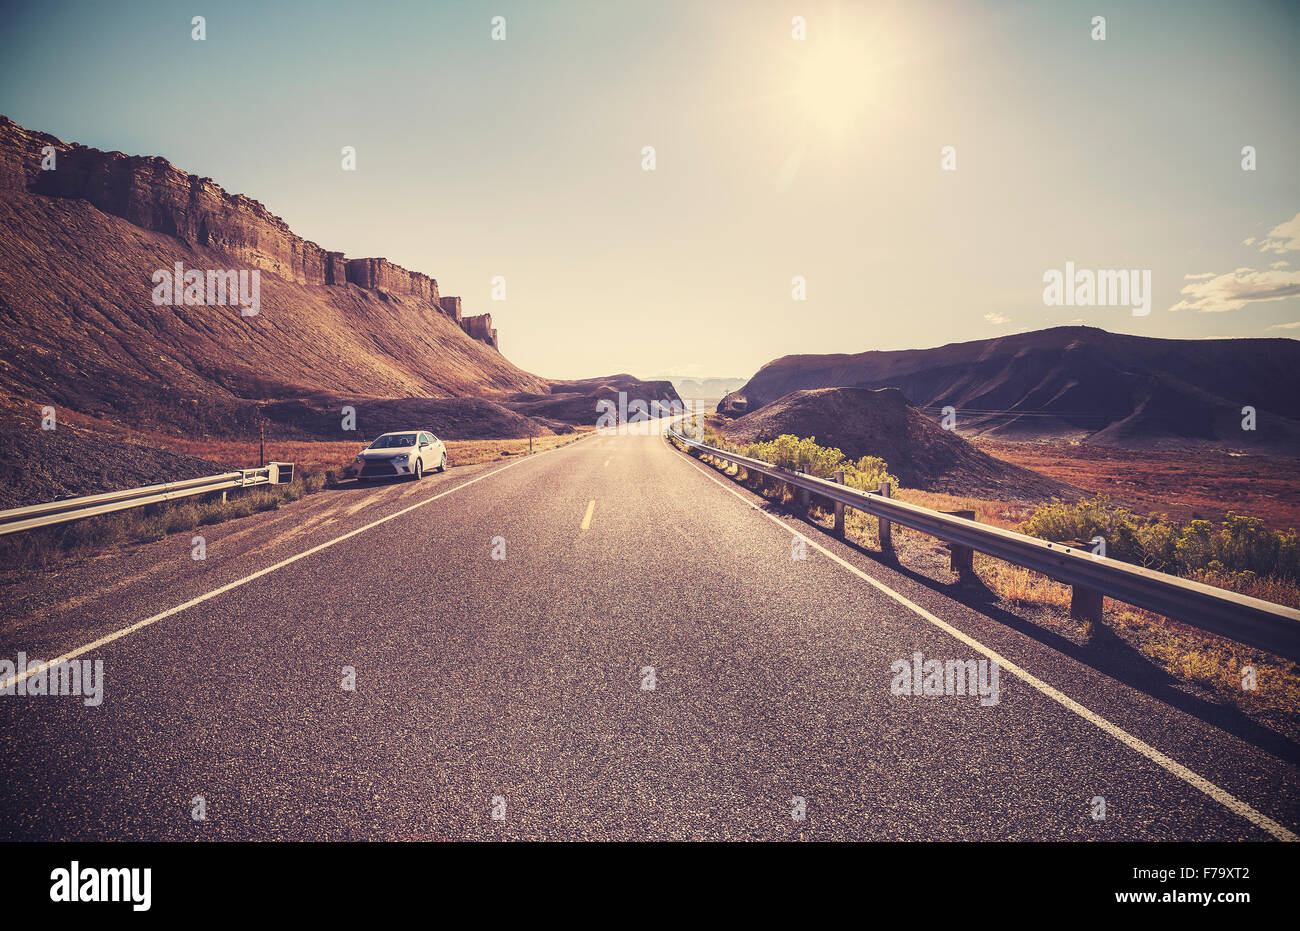 Retro toned desert highway against sun, travel concept. - Stock Image